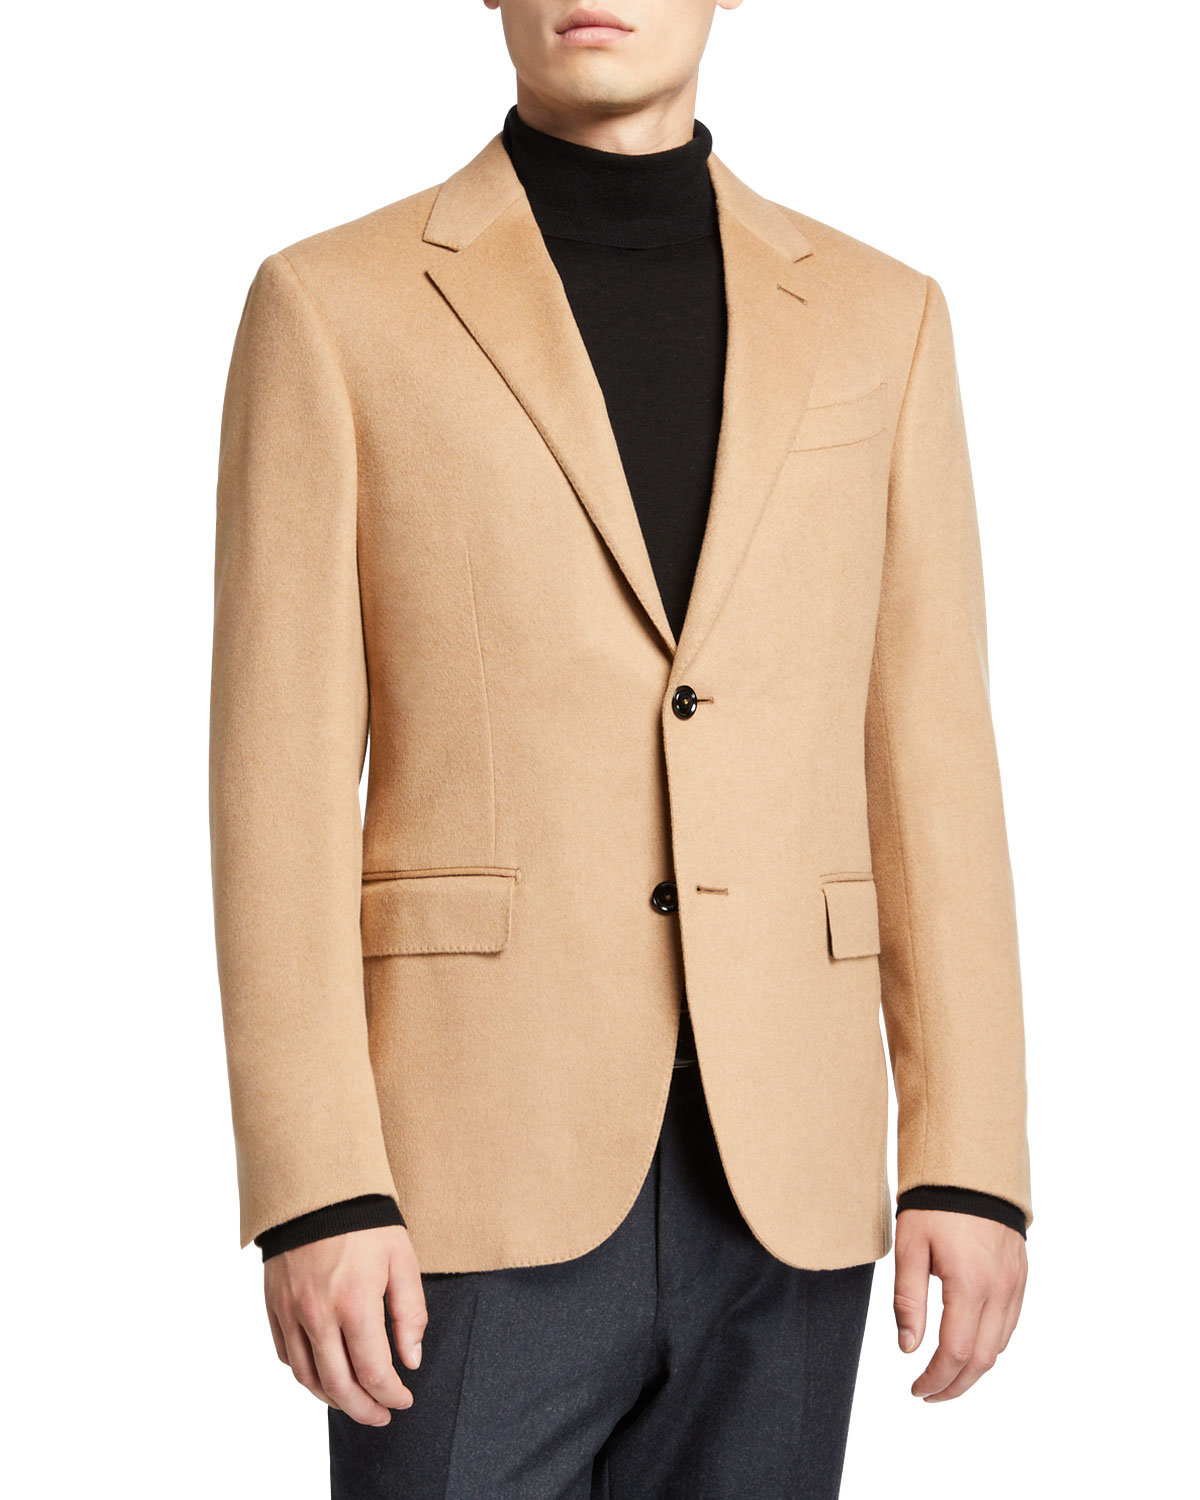 mens-solid-camel-hair-sport-jacket by ermenegildo-zegna